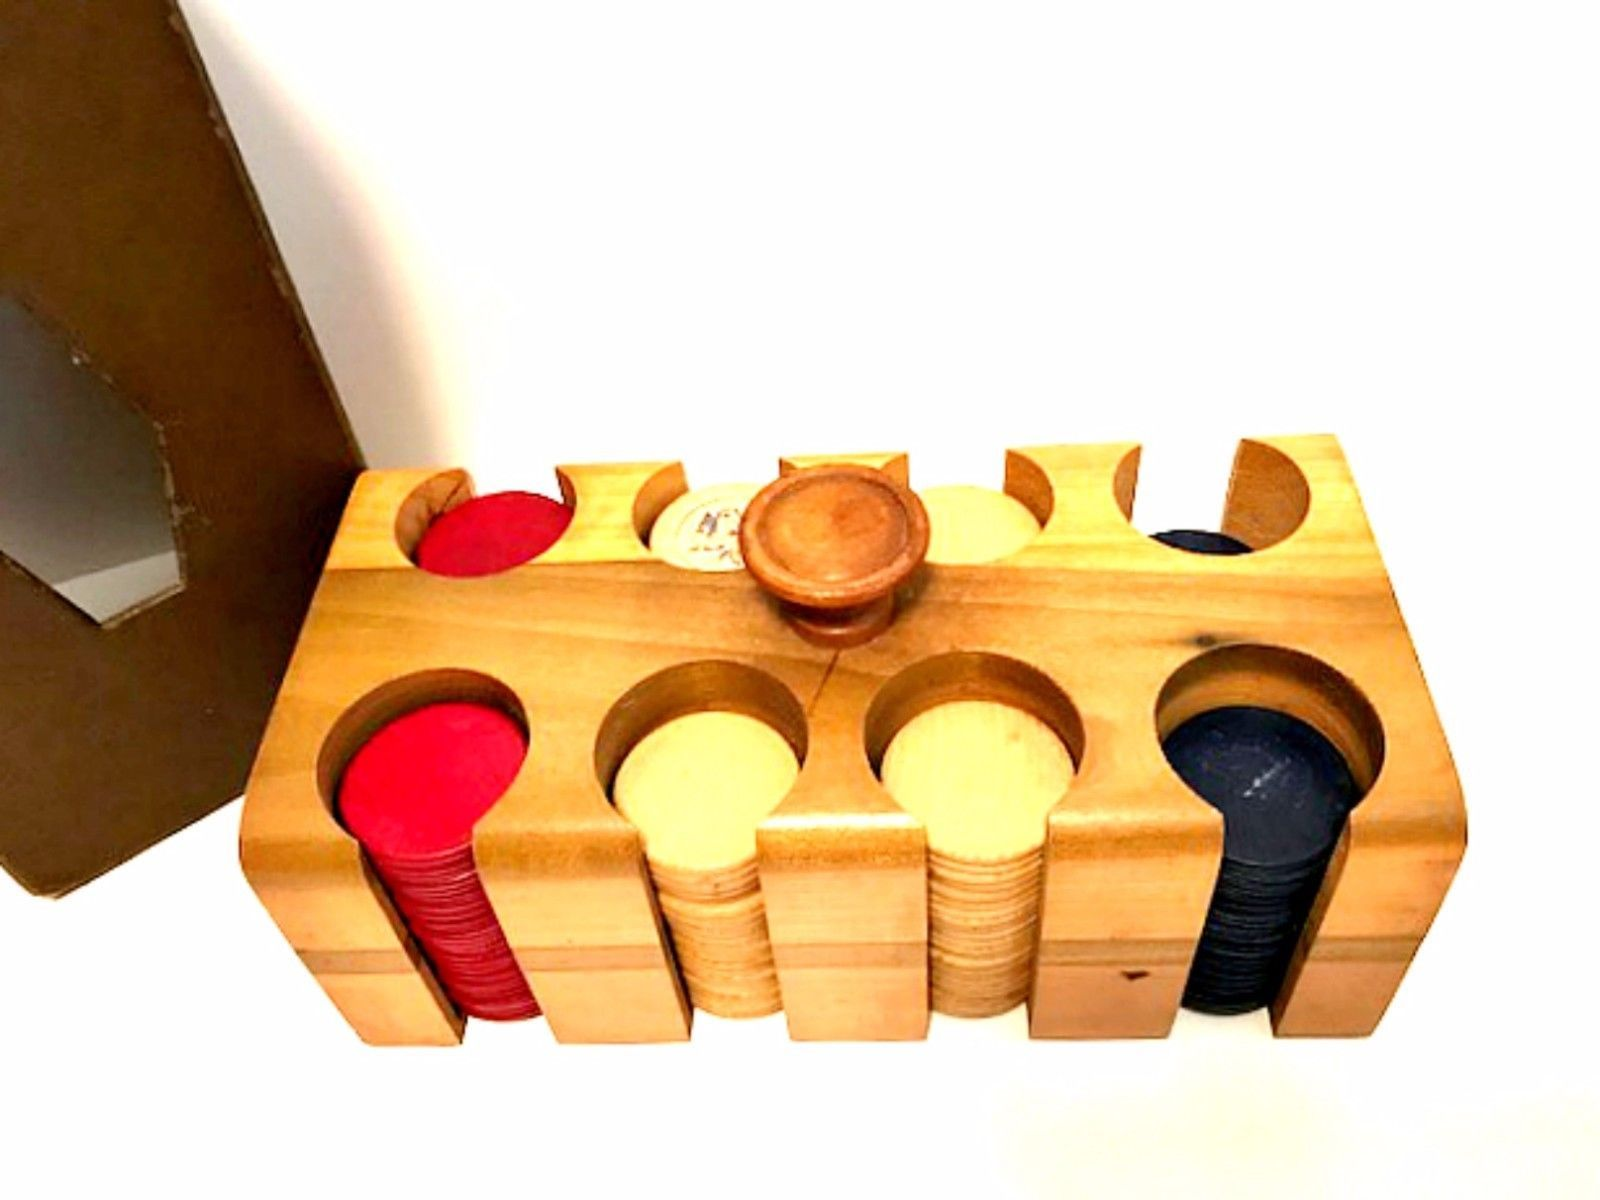 Vintage Wooden Poker Chip Caddy Rack Box Carrier with Cover 9 inches Long